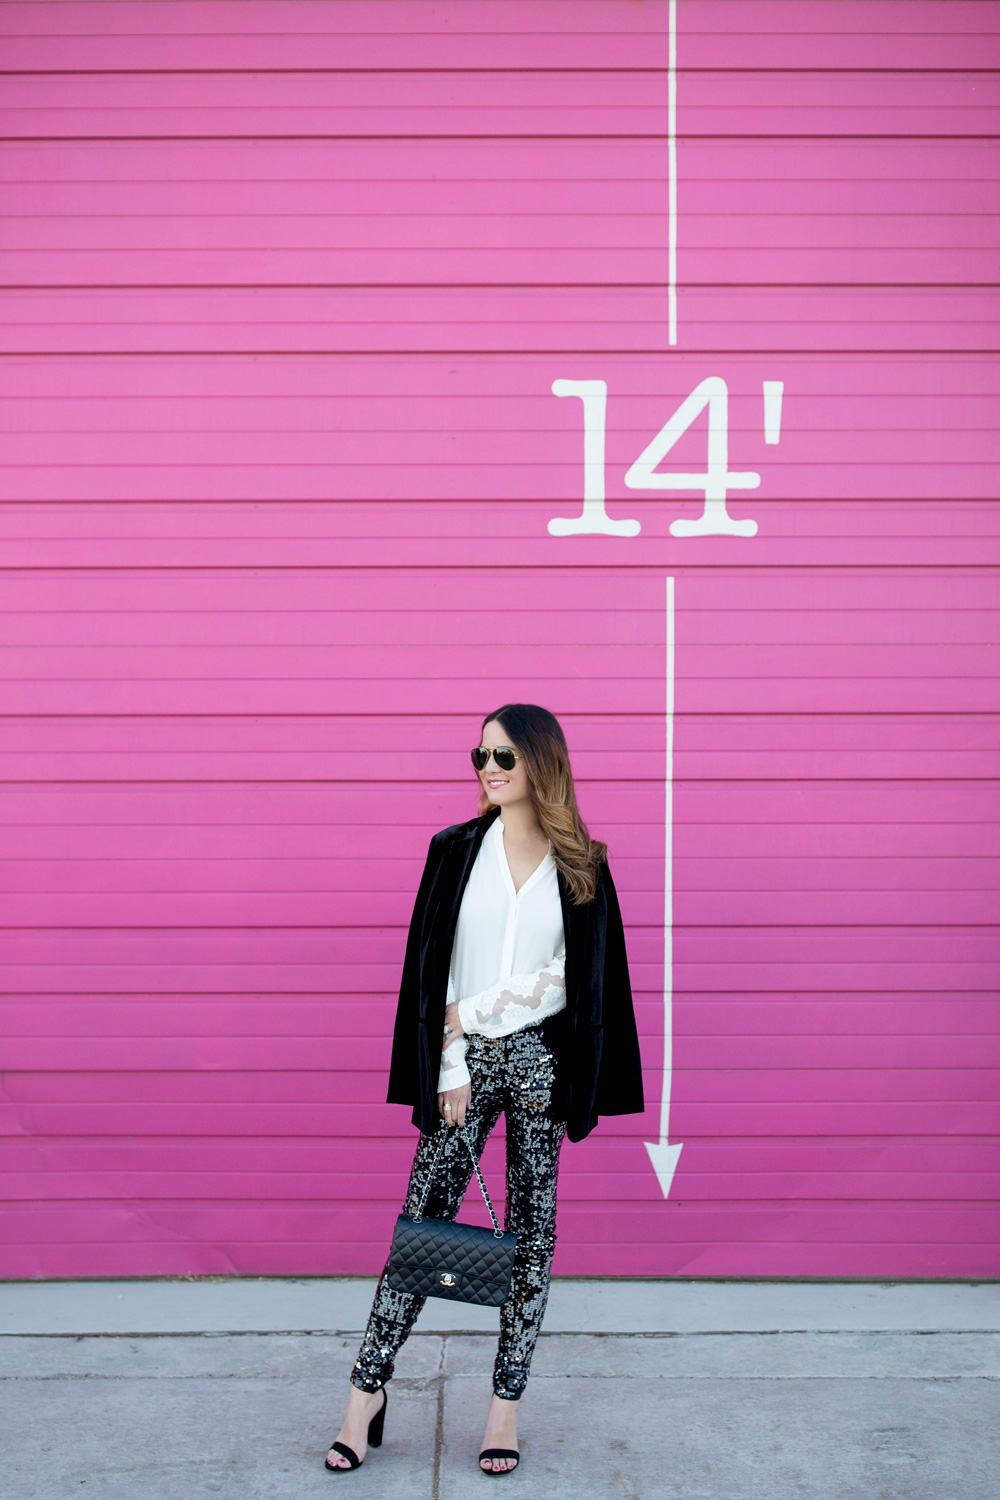 Jennifer Lake Style Charade in Express sequin leggings, black velvet blazer, ivory lace top, and a quilted Chanel flap bag in front of a Chicago pink wall